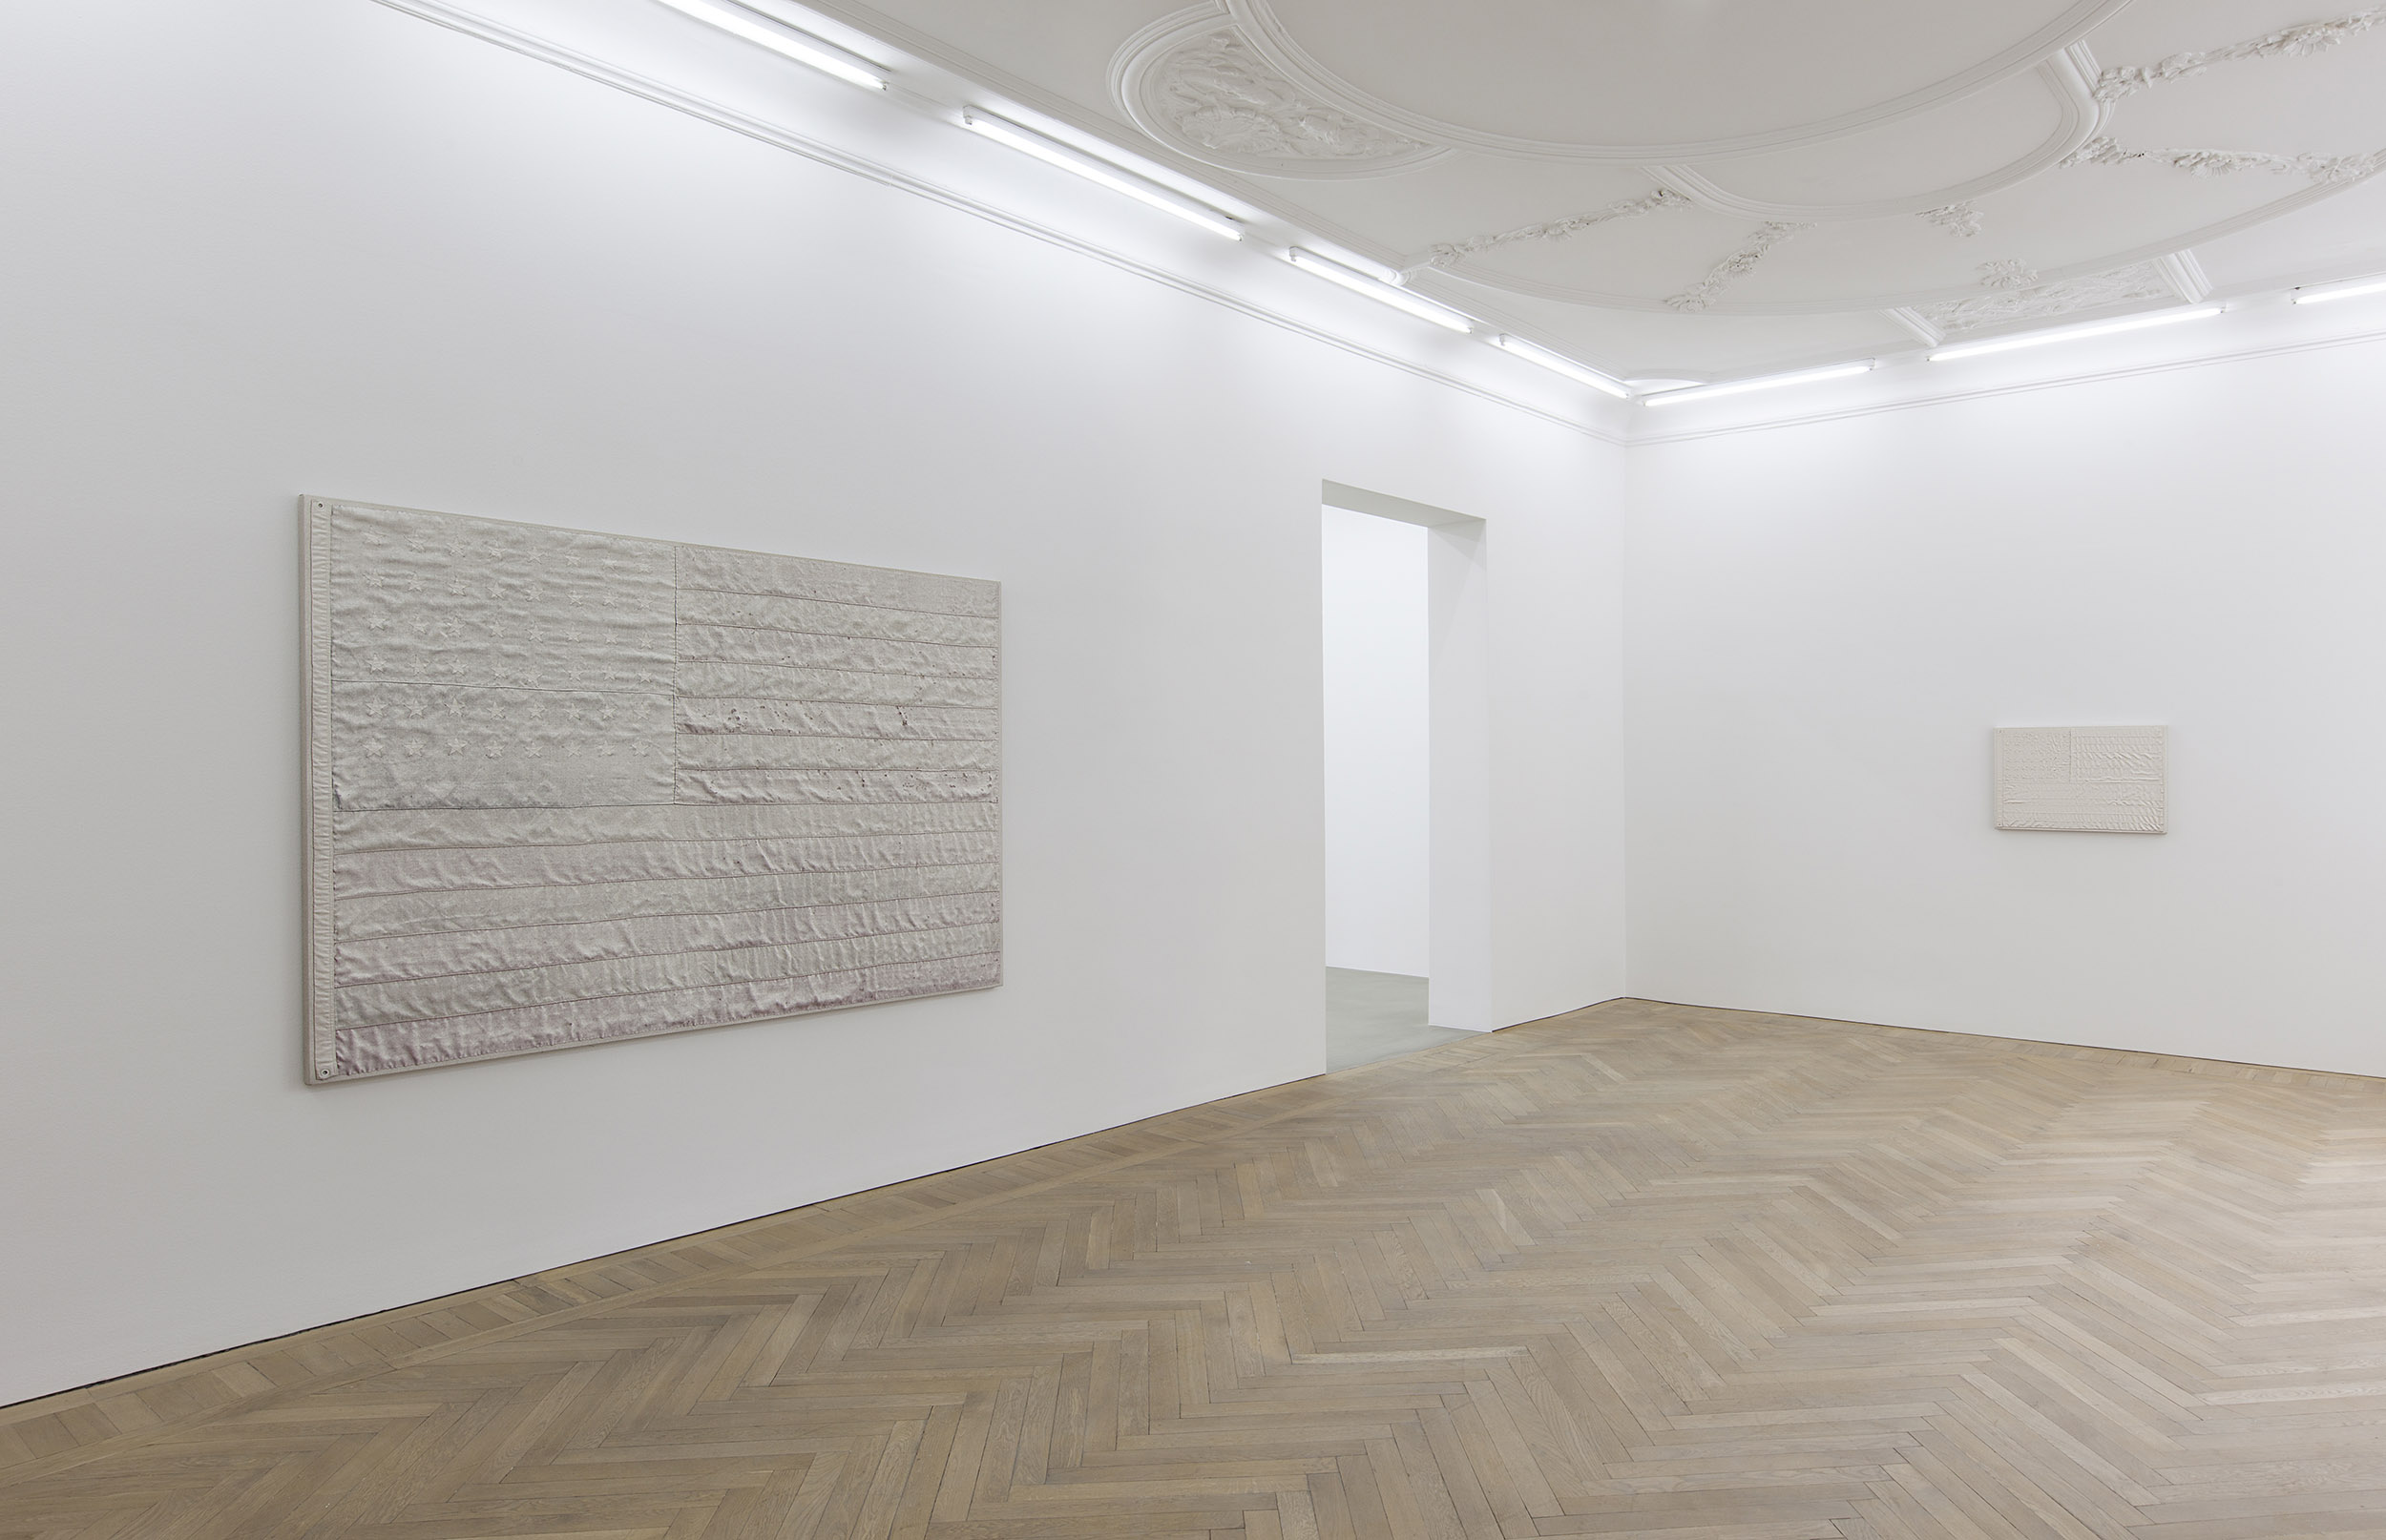 AA Bronson @ Esther Schipper, Berlin